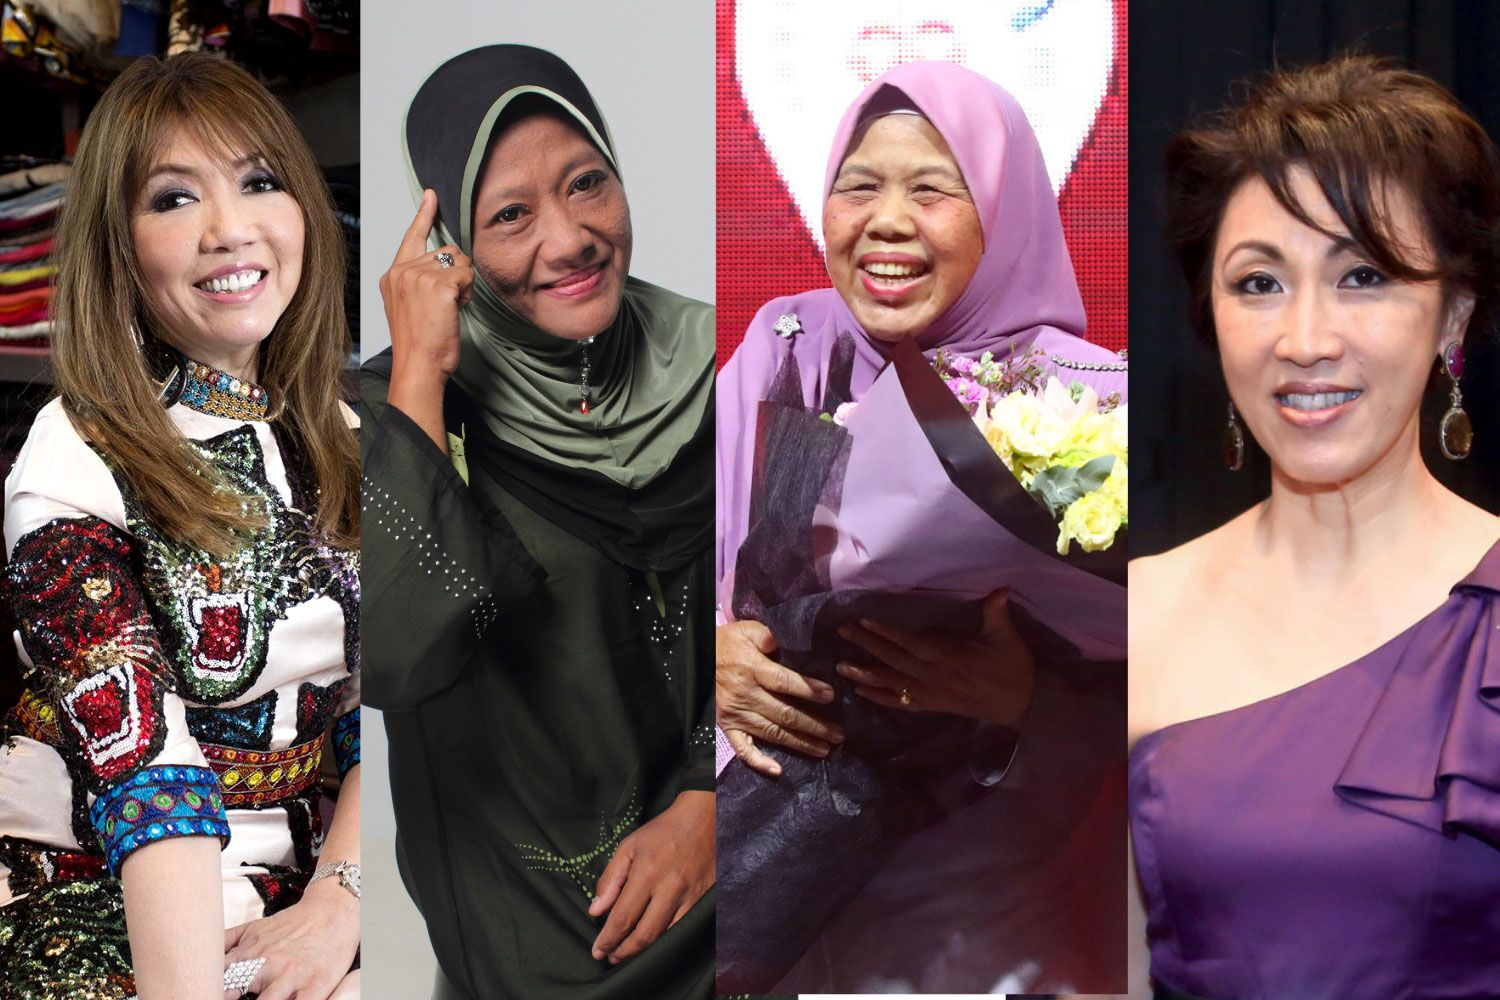 #GirlPower: 4 Extraordinary Women Share The Spotlight For A Worthy Cause This International Women's Day